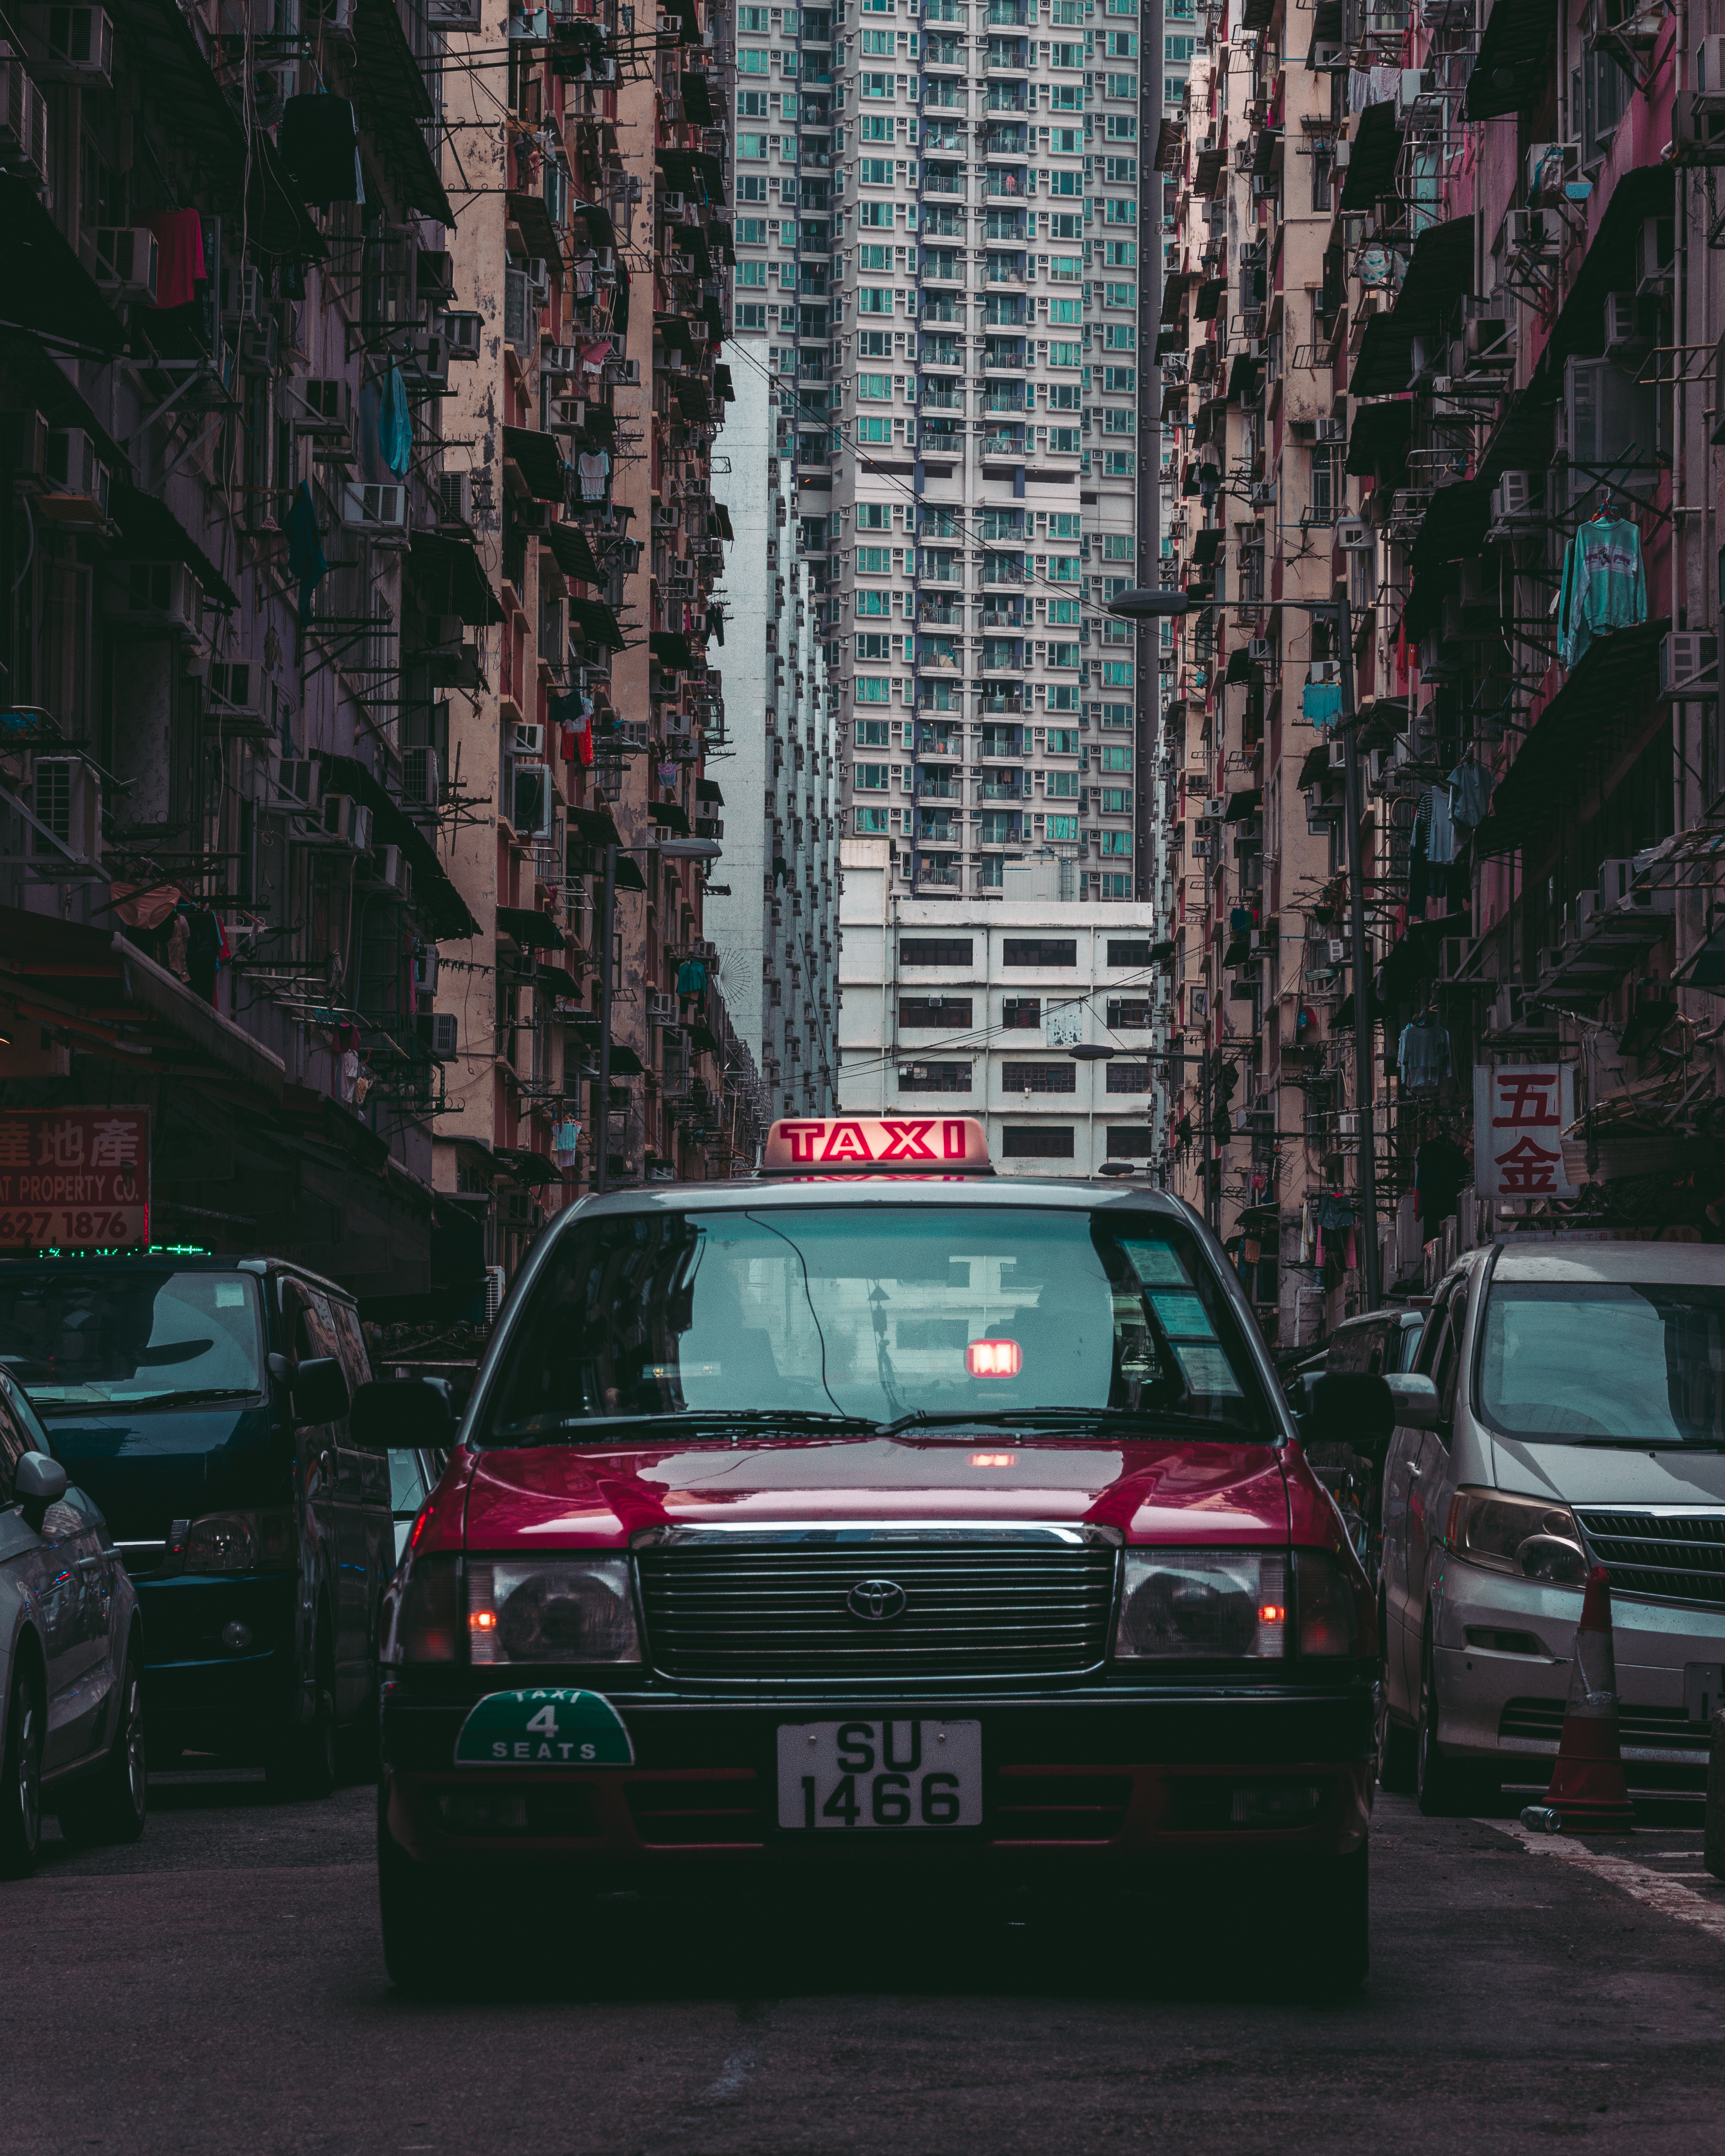 Buildings and Taxi